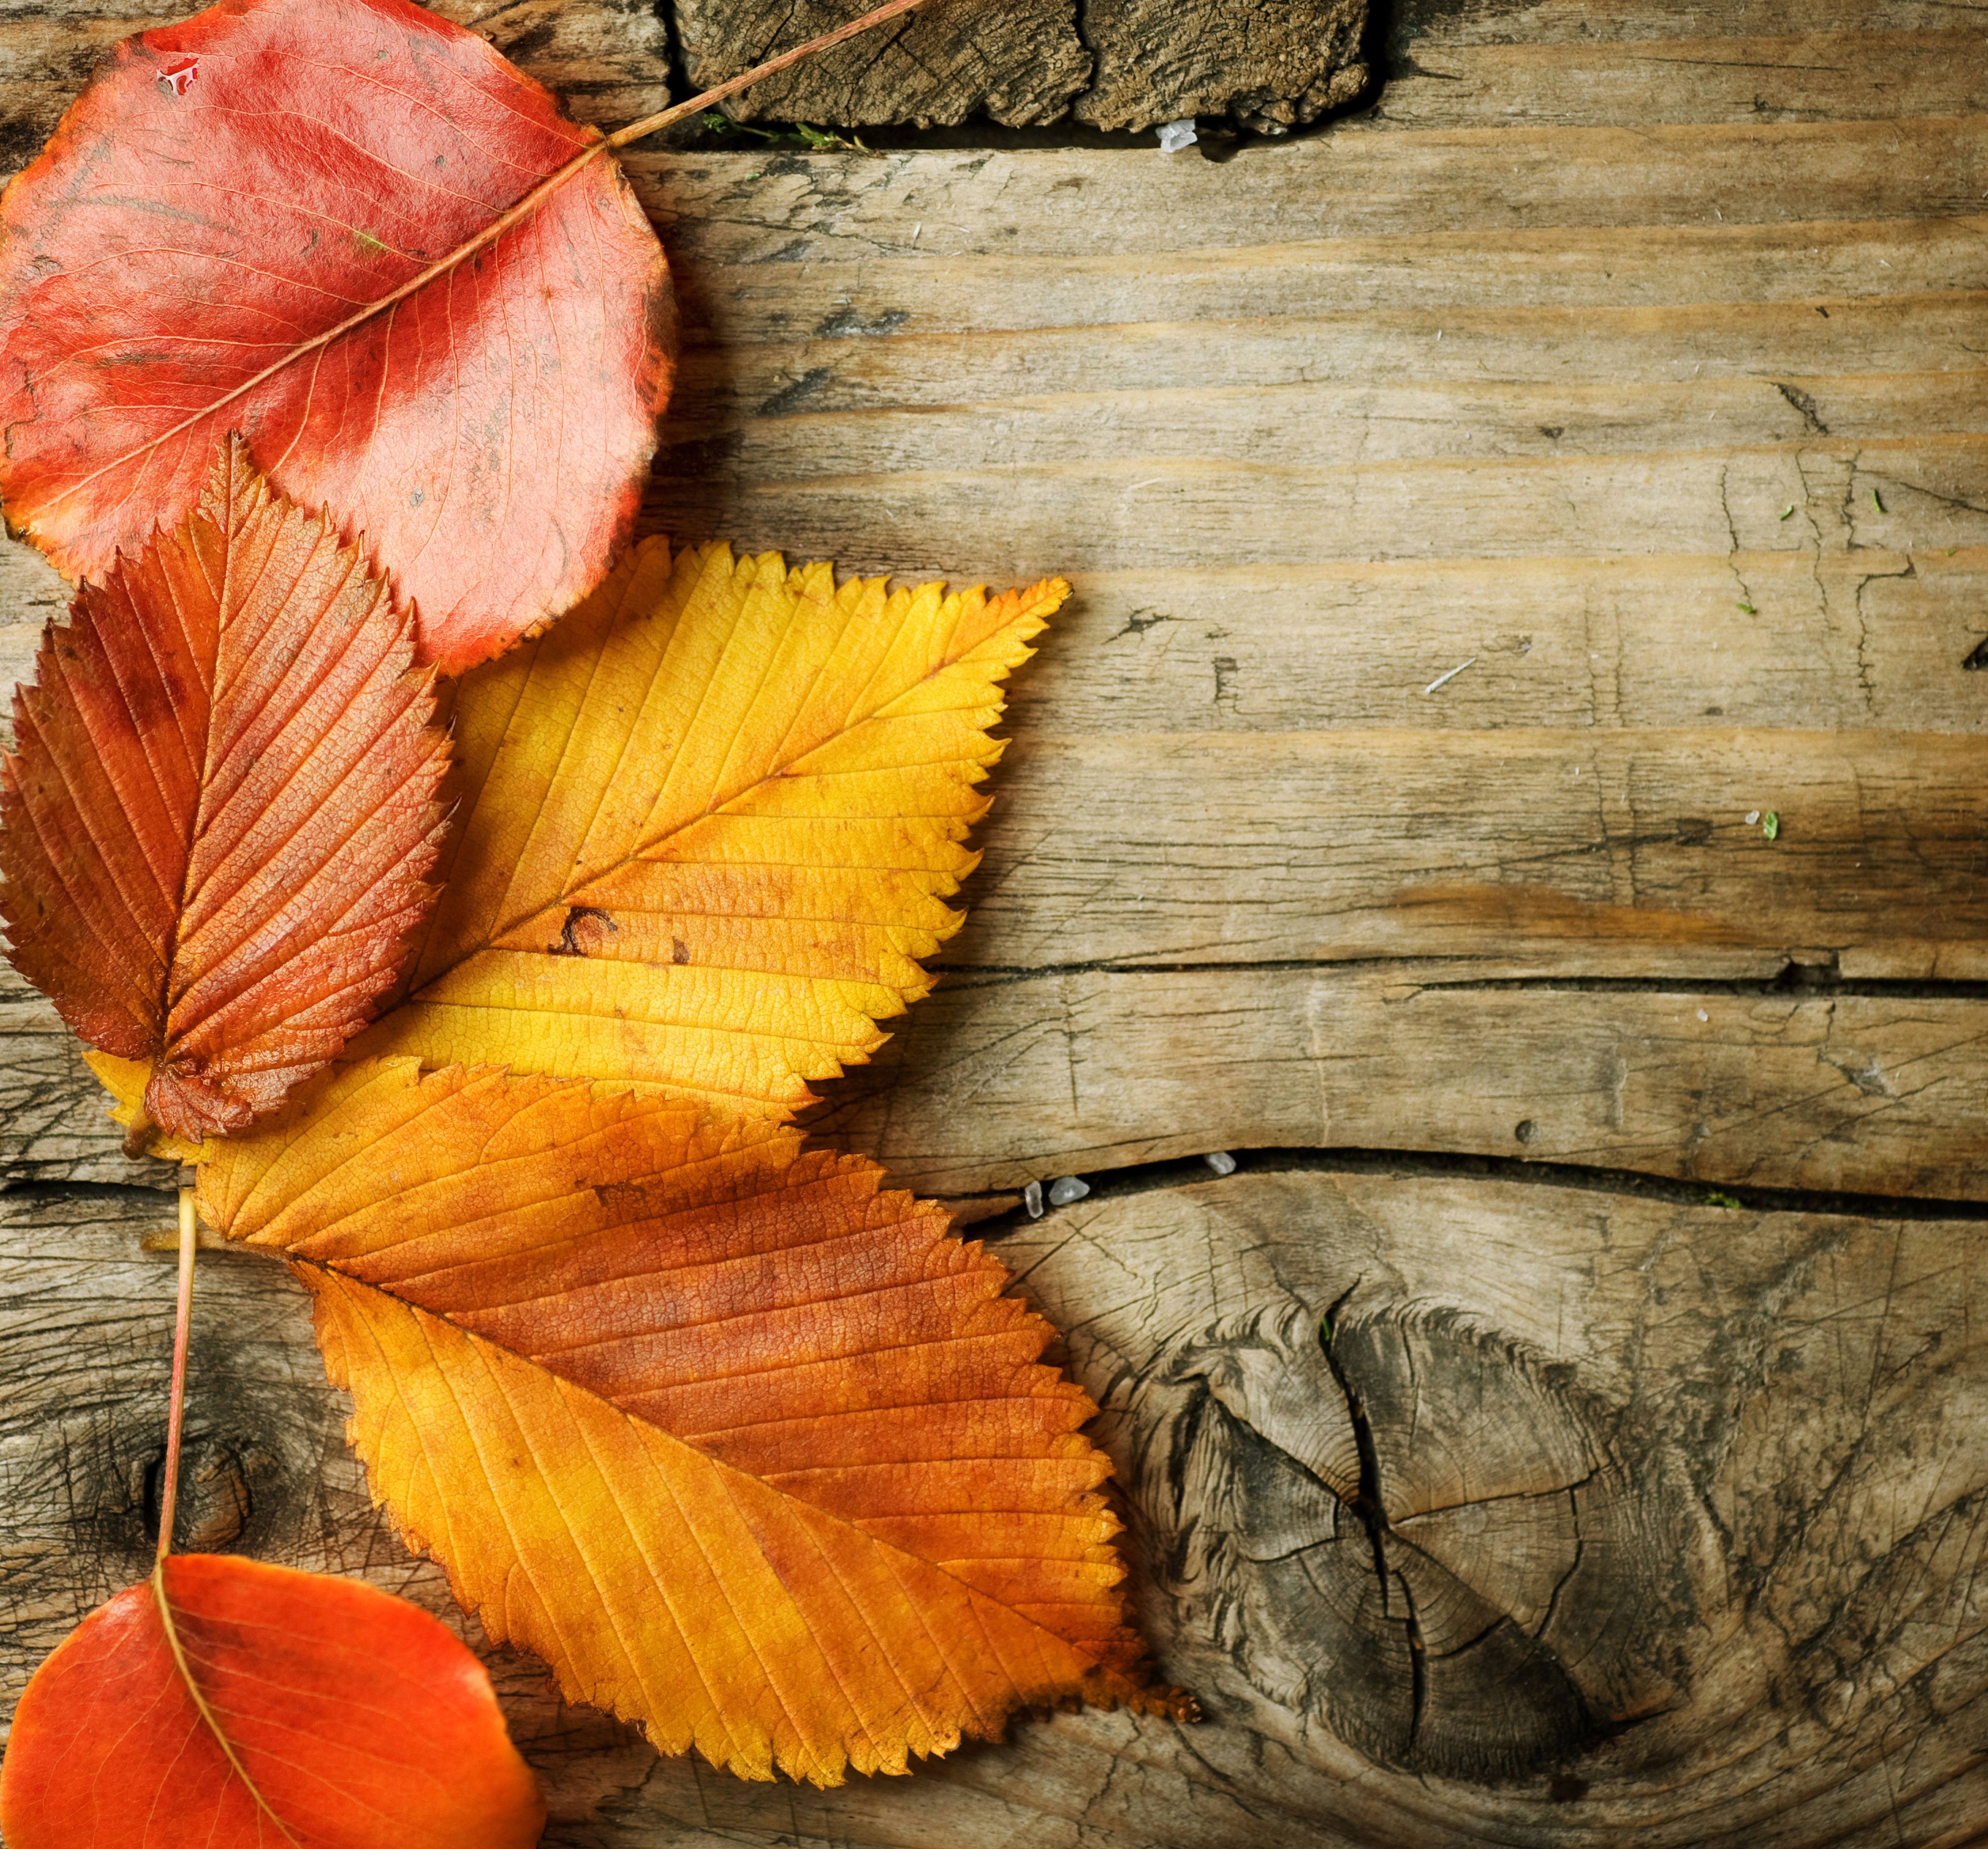 Fall Pumpkin Wallpaper Desktop Wooden Background With Autumn Leaves Gallery